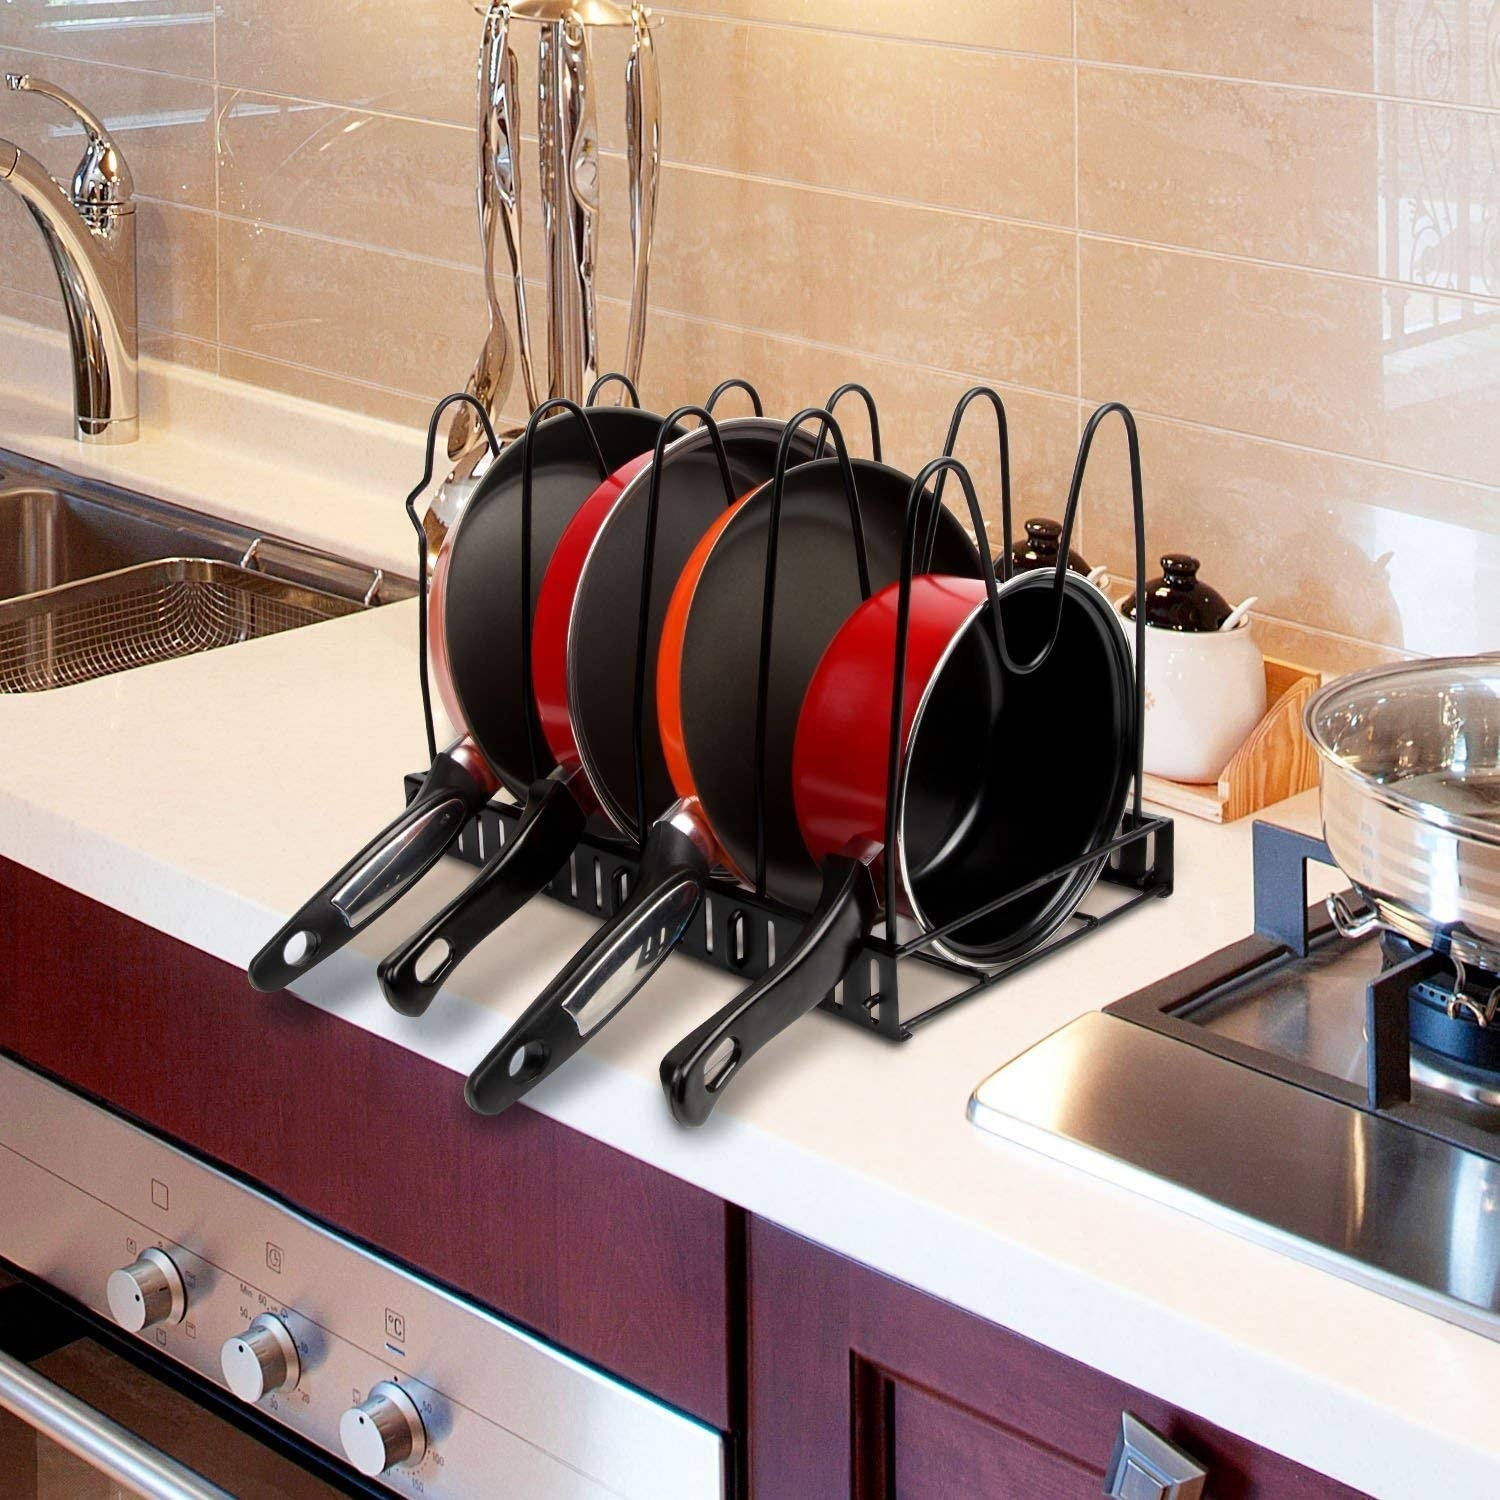 The kitchen rack used horizontally to hold pans and pots